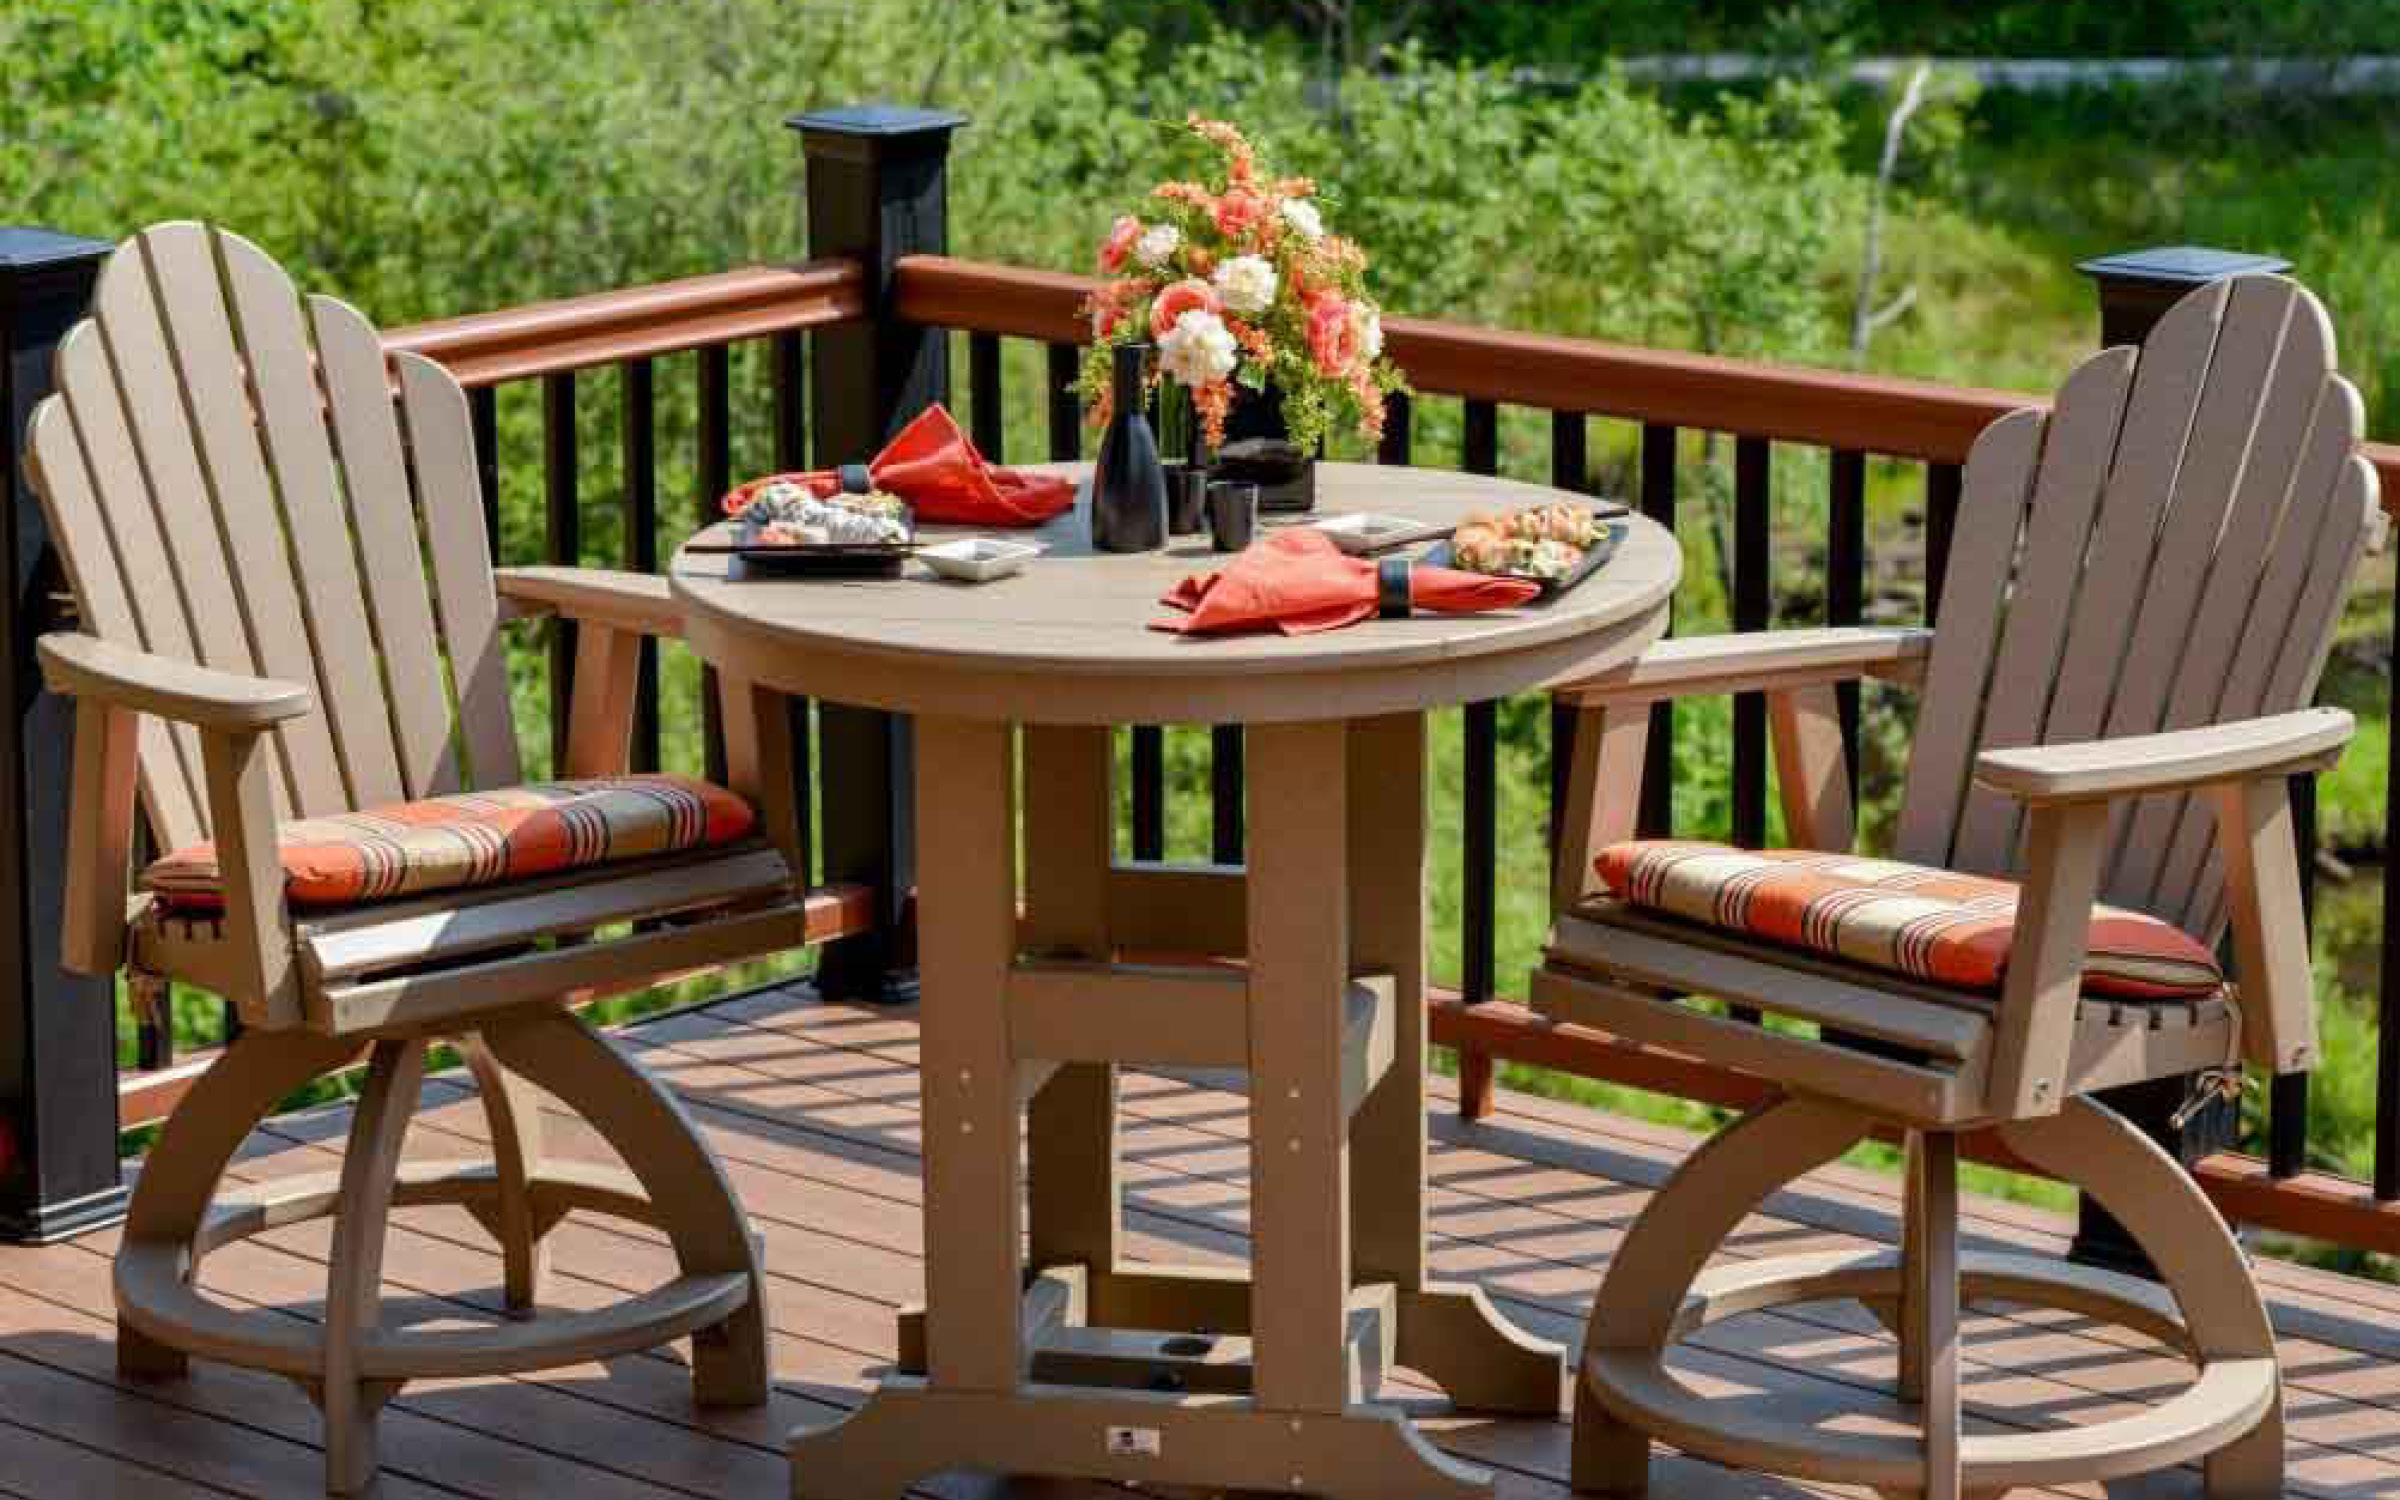 Outdoor Living and Dining Room Furniture | iFurnish, Frisco, CO